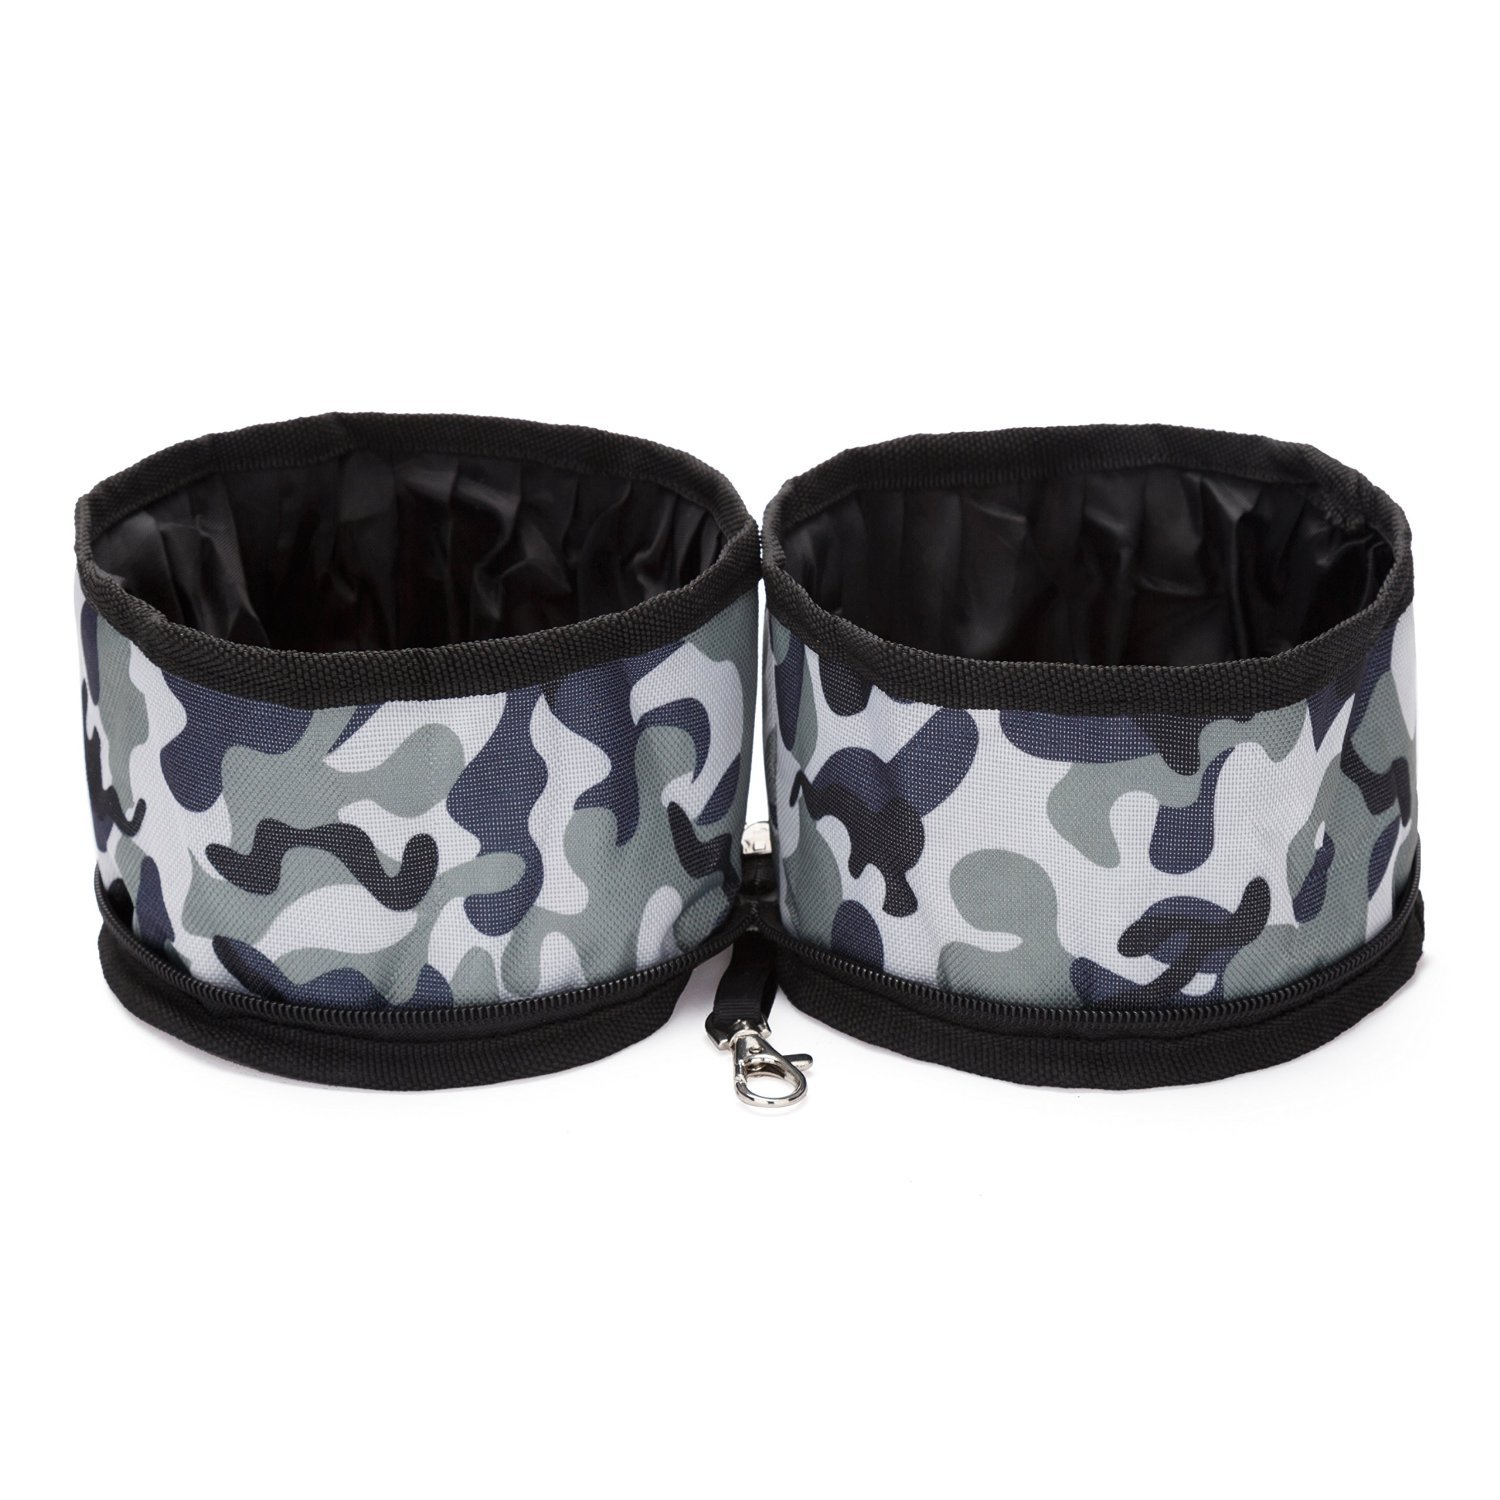 Ultrafun Travel Pet Bowl Collapsible Double Water & Food Bowls for Dogs & Cats Outdoor On The Go (Camo)